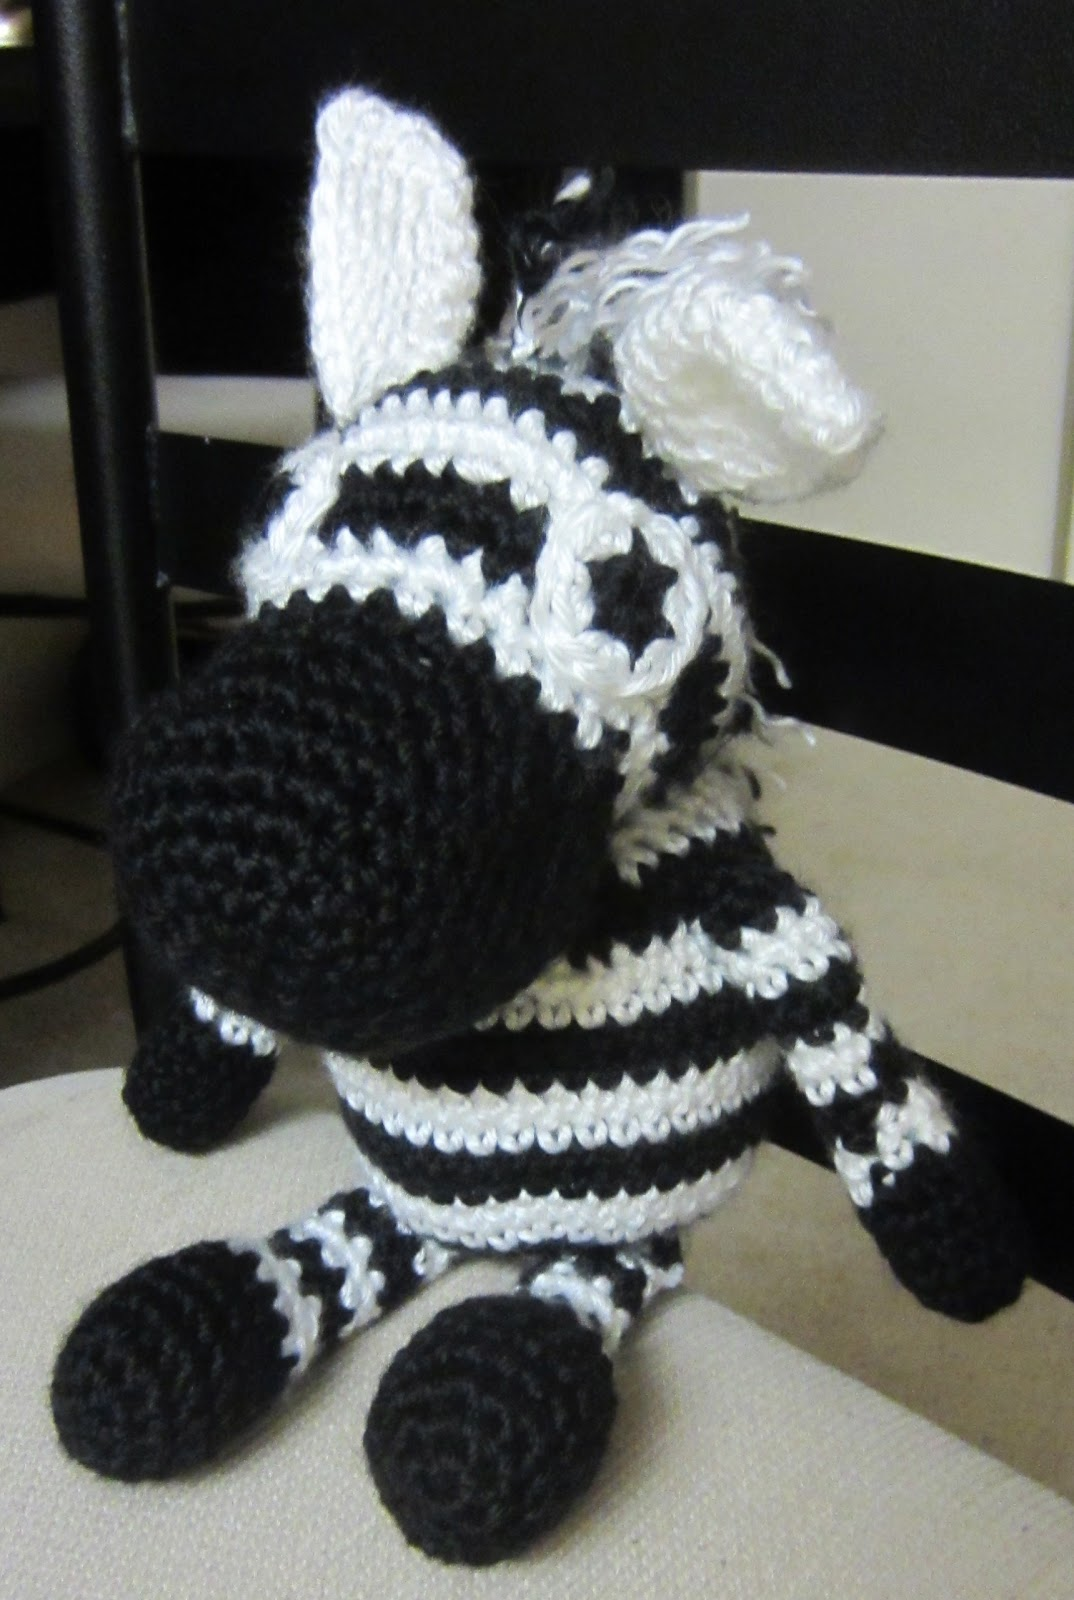 Free Crochet Zebra Patterns : Olenas Crafts: Amigurumi Zebra Toy - Free Crochet Pattern